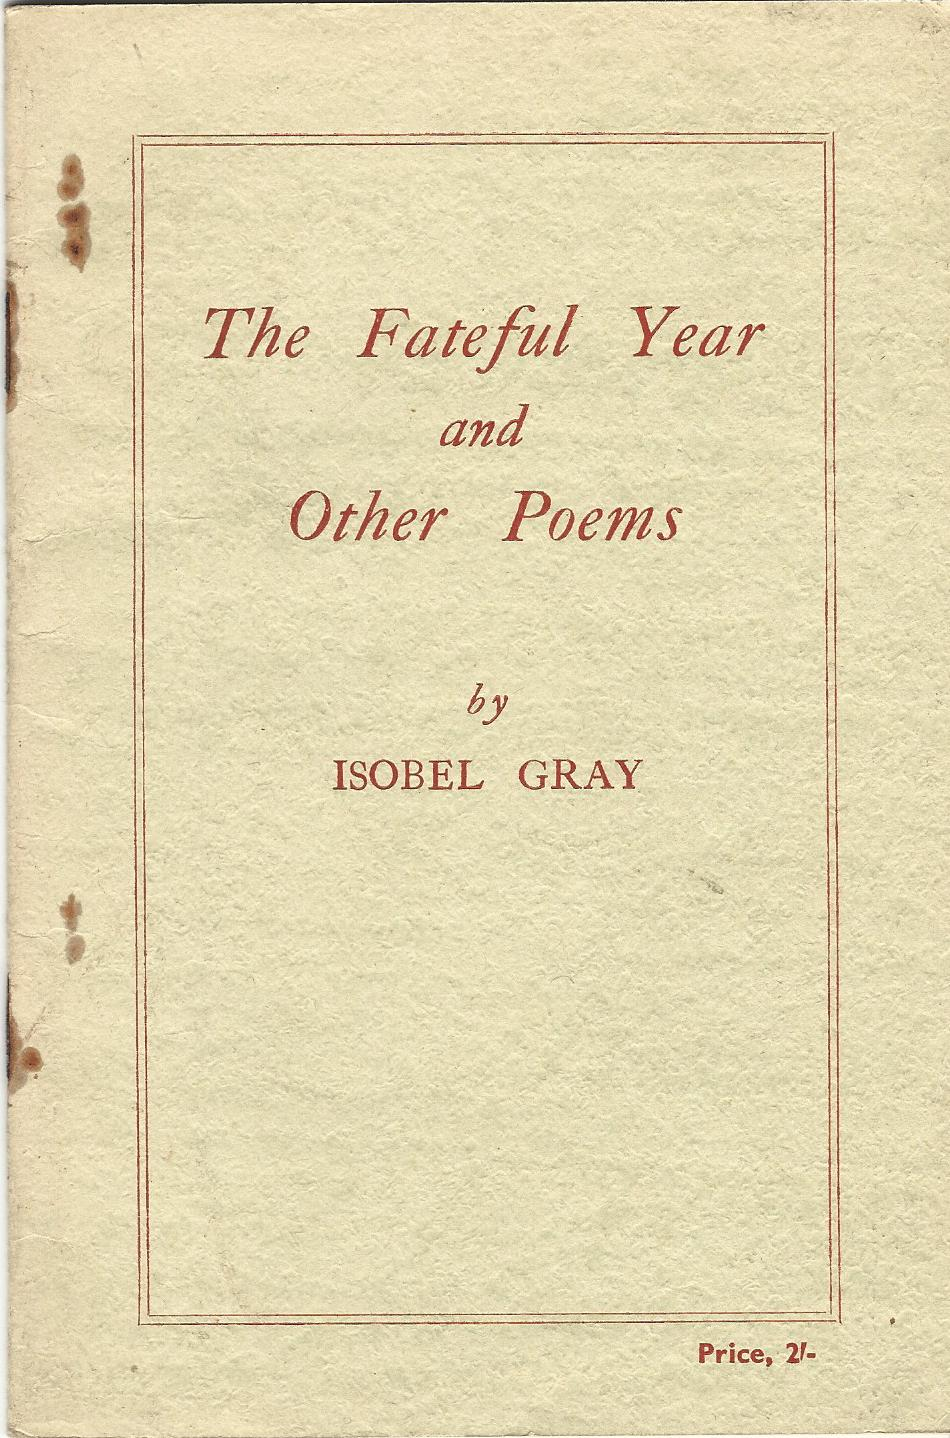 Image for The Fateful Year and Other Poems